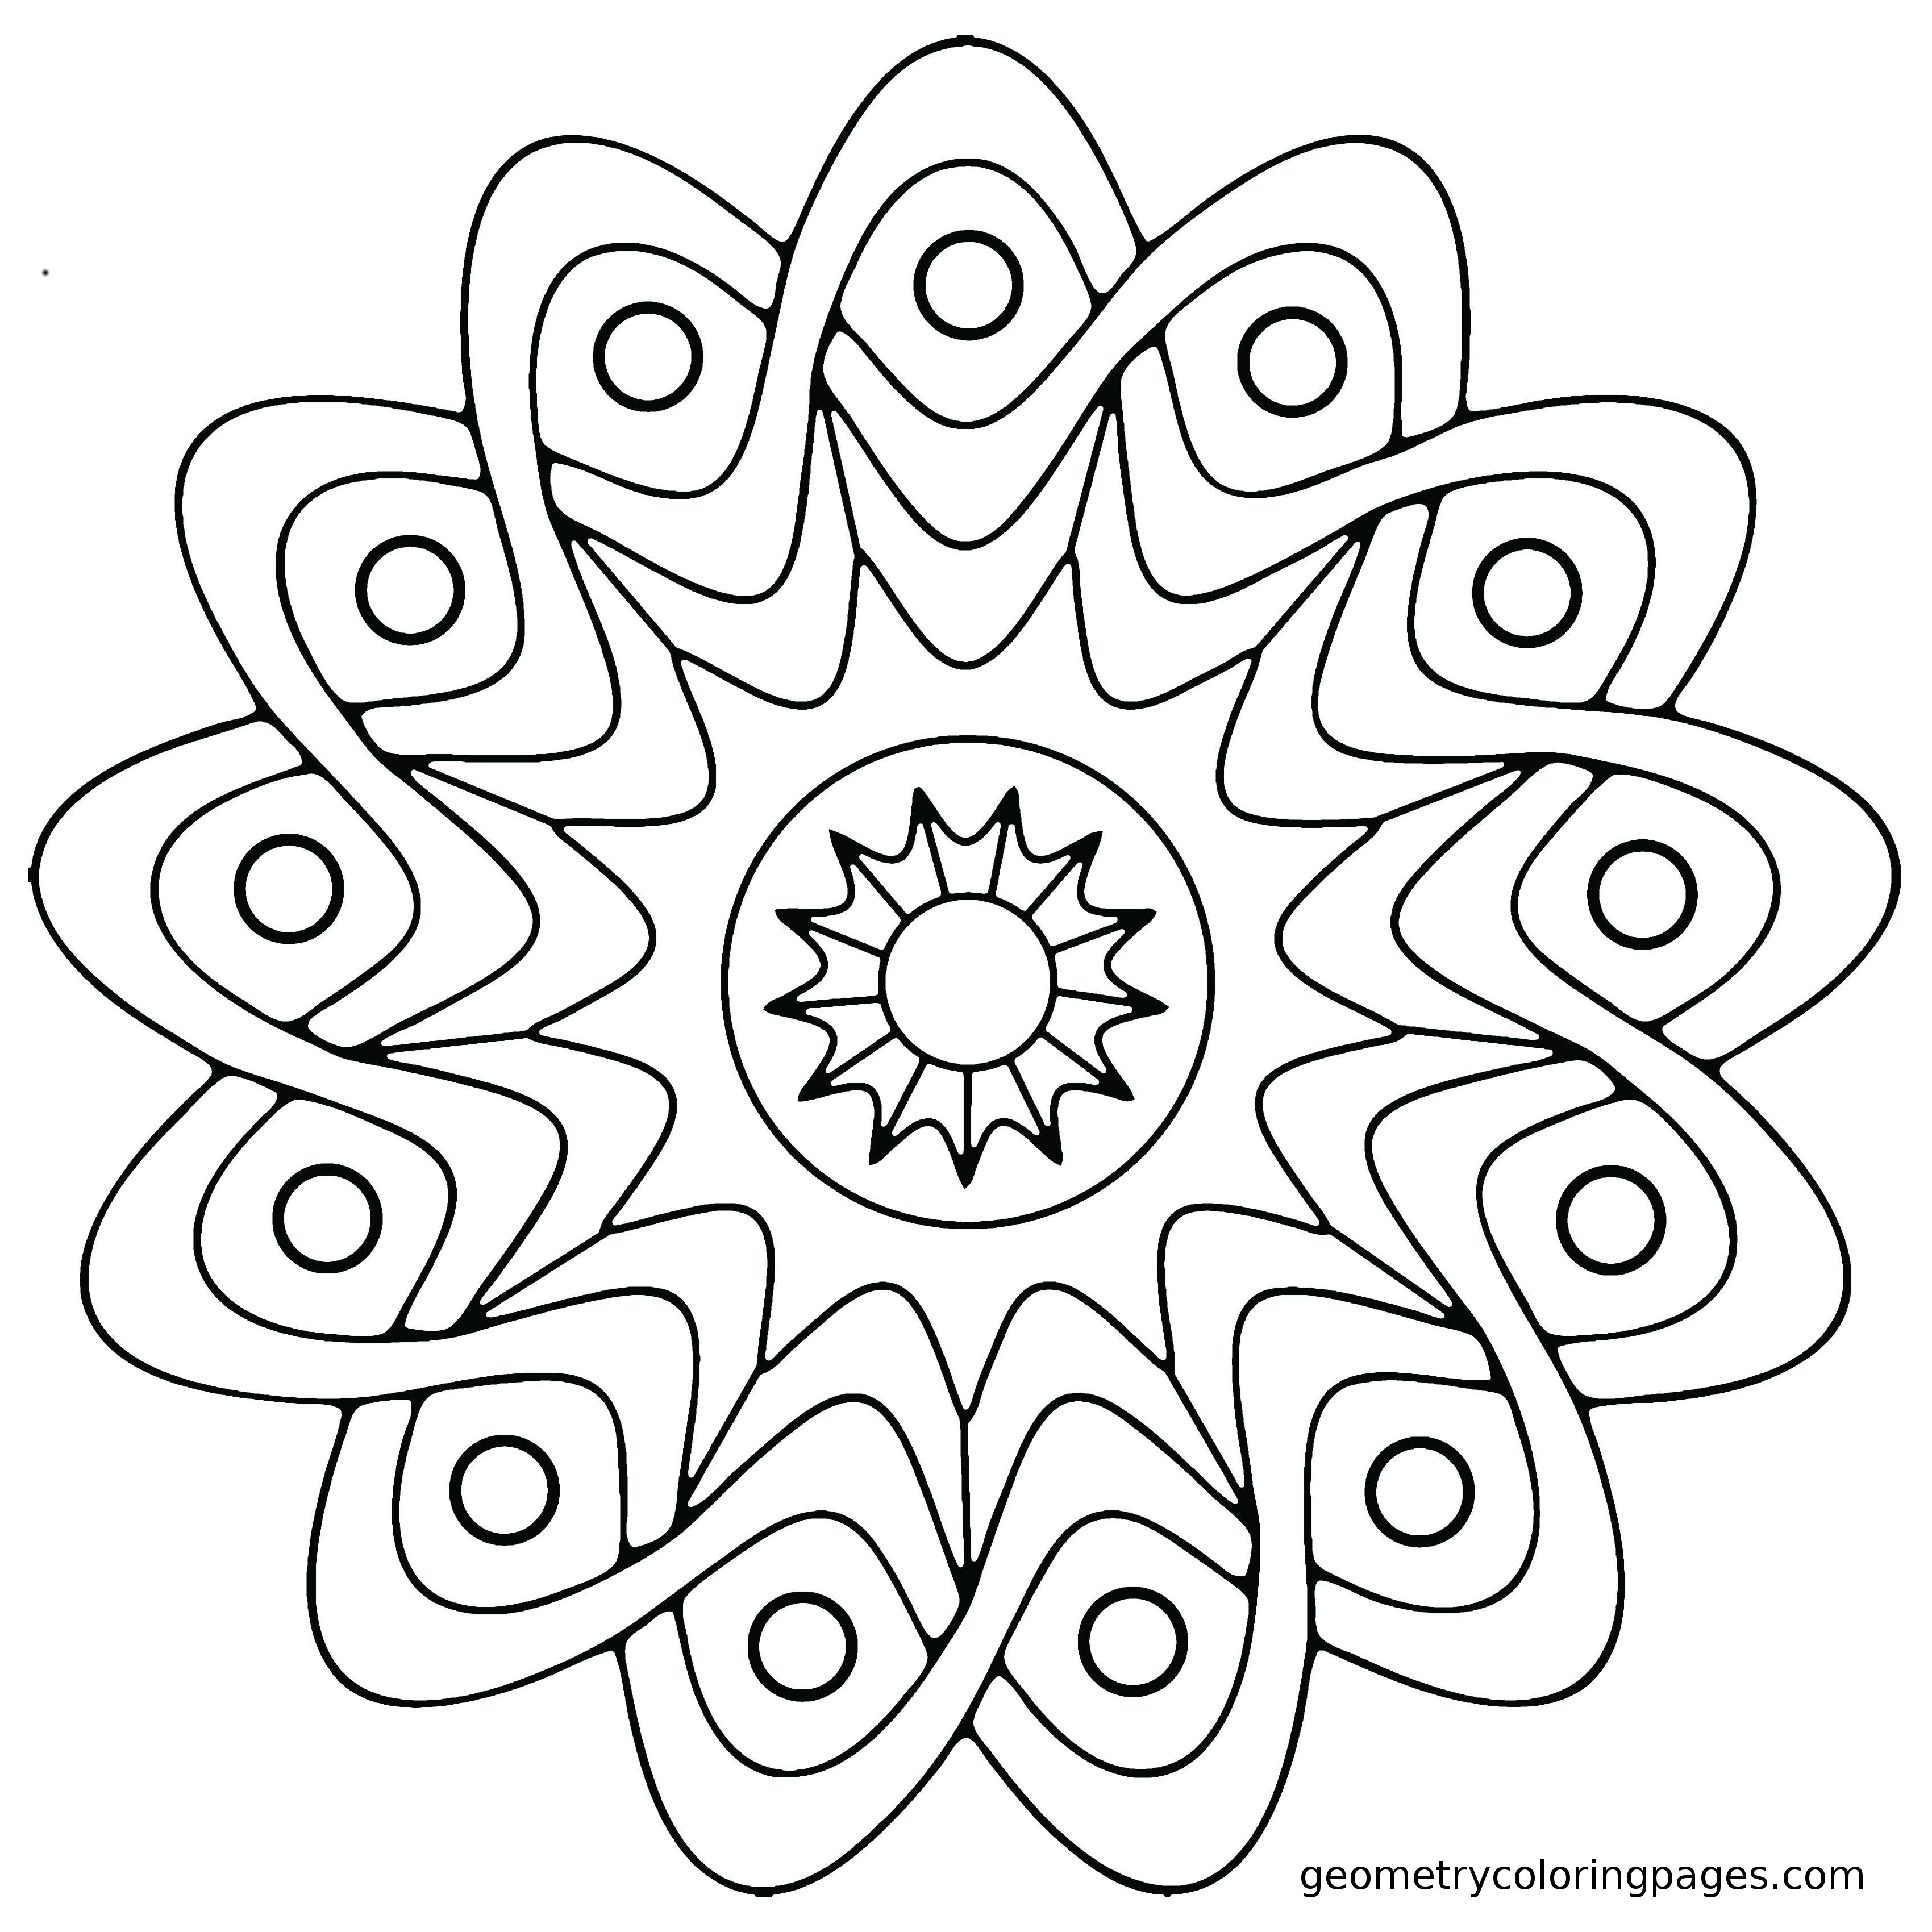 3400x3400 Free Printable Good Free Easy Coloring Pages Printable